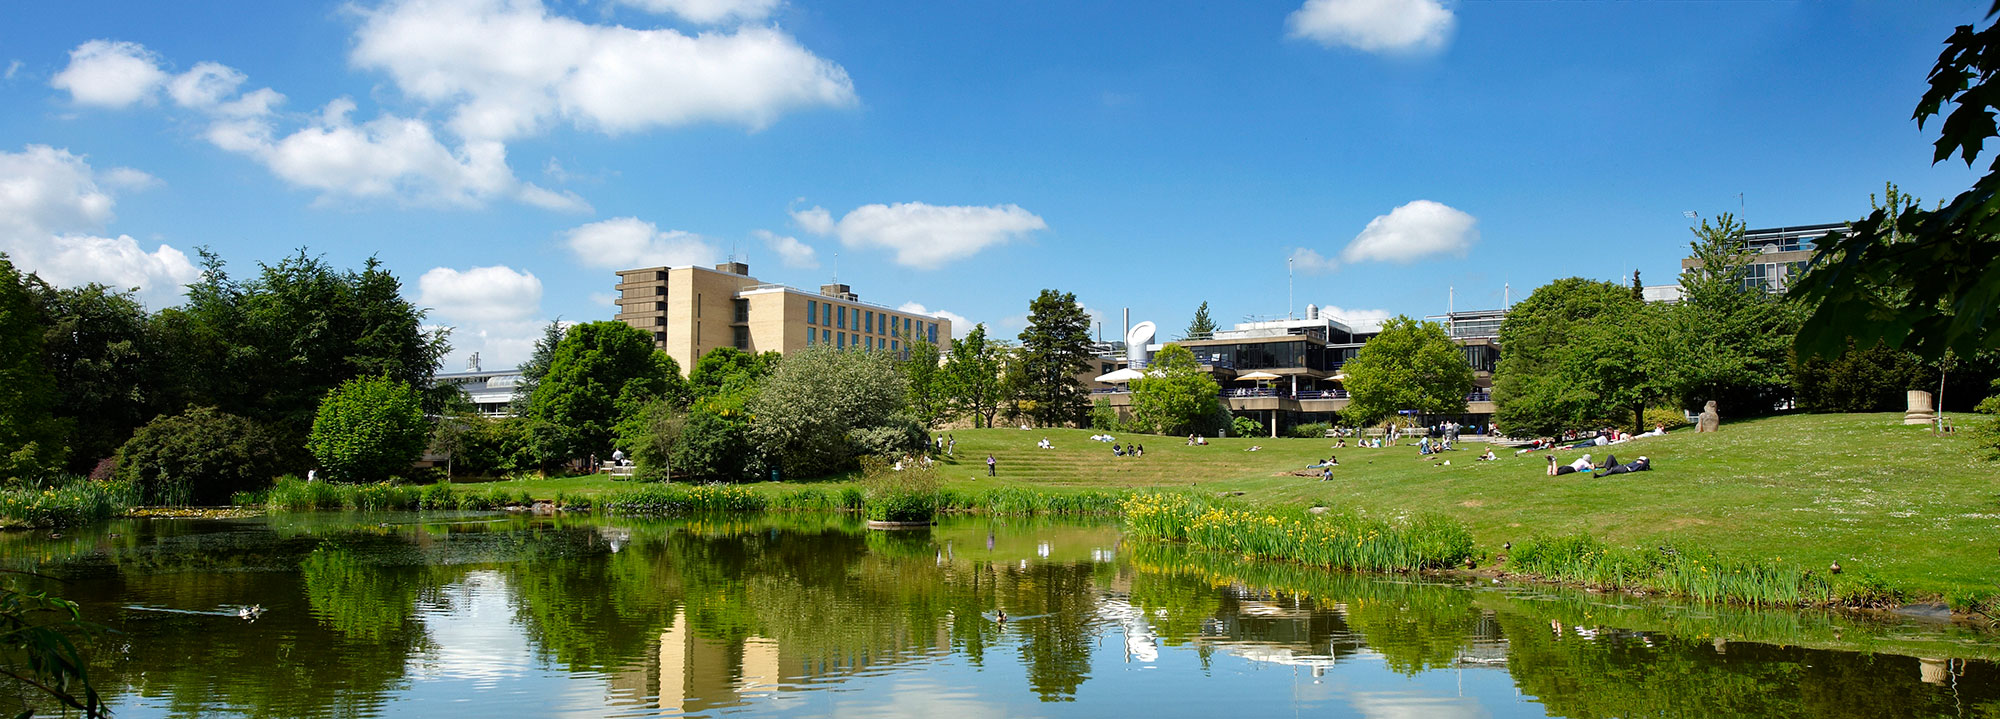 The campus Bath University